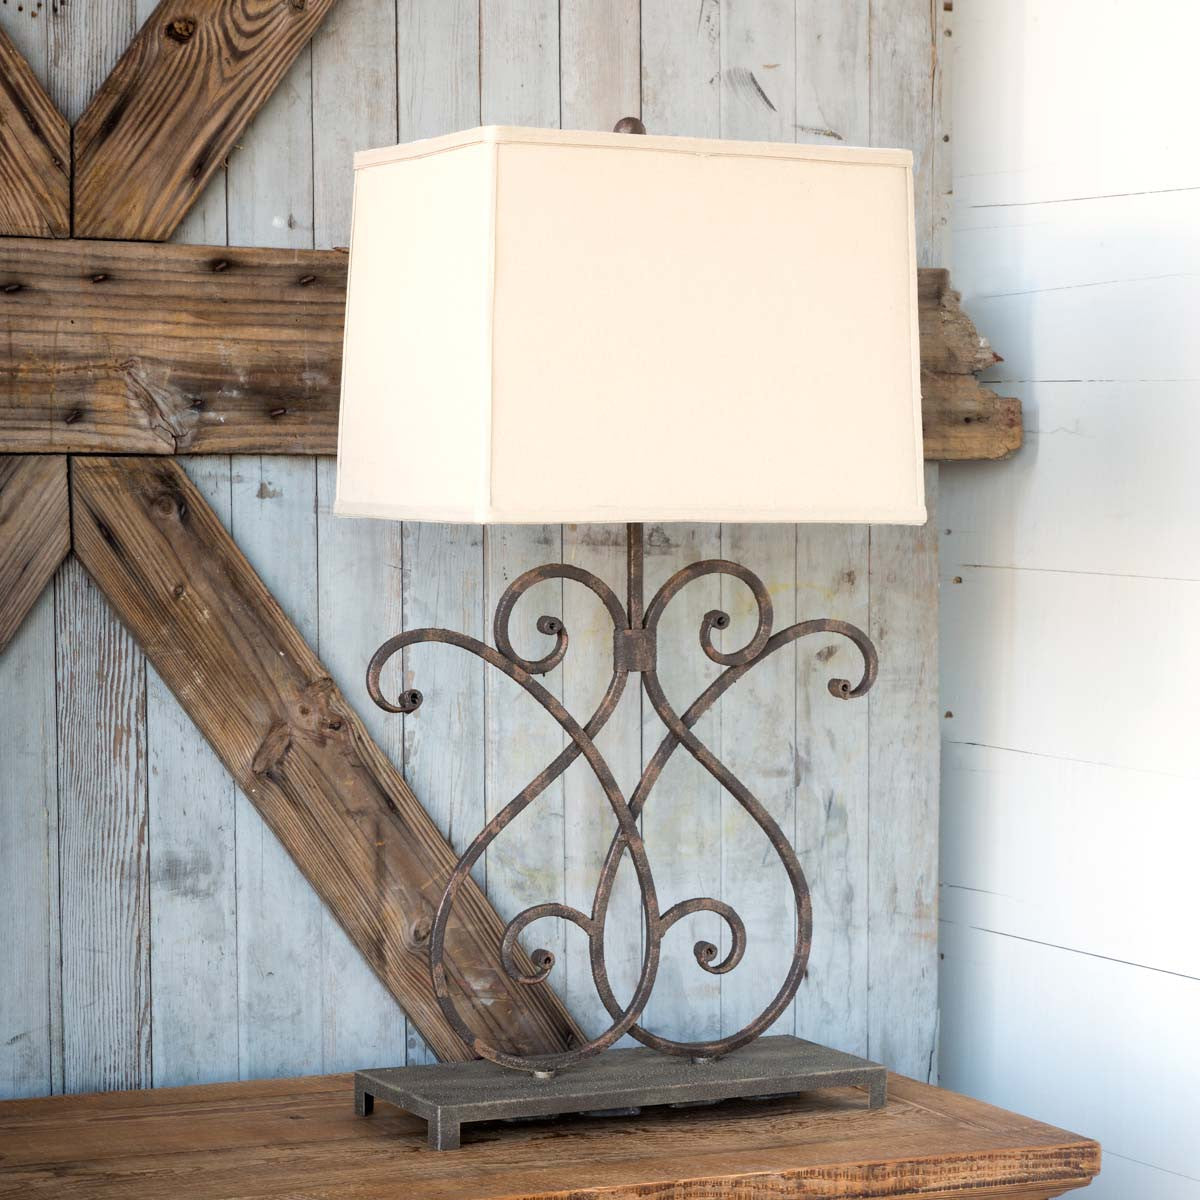 Lovecup Rustic Elegance Table Lamp L1418